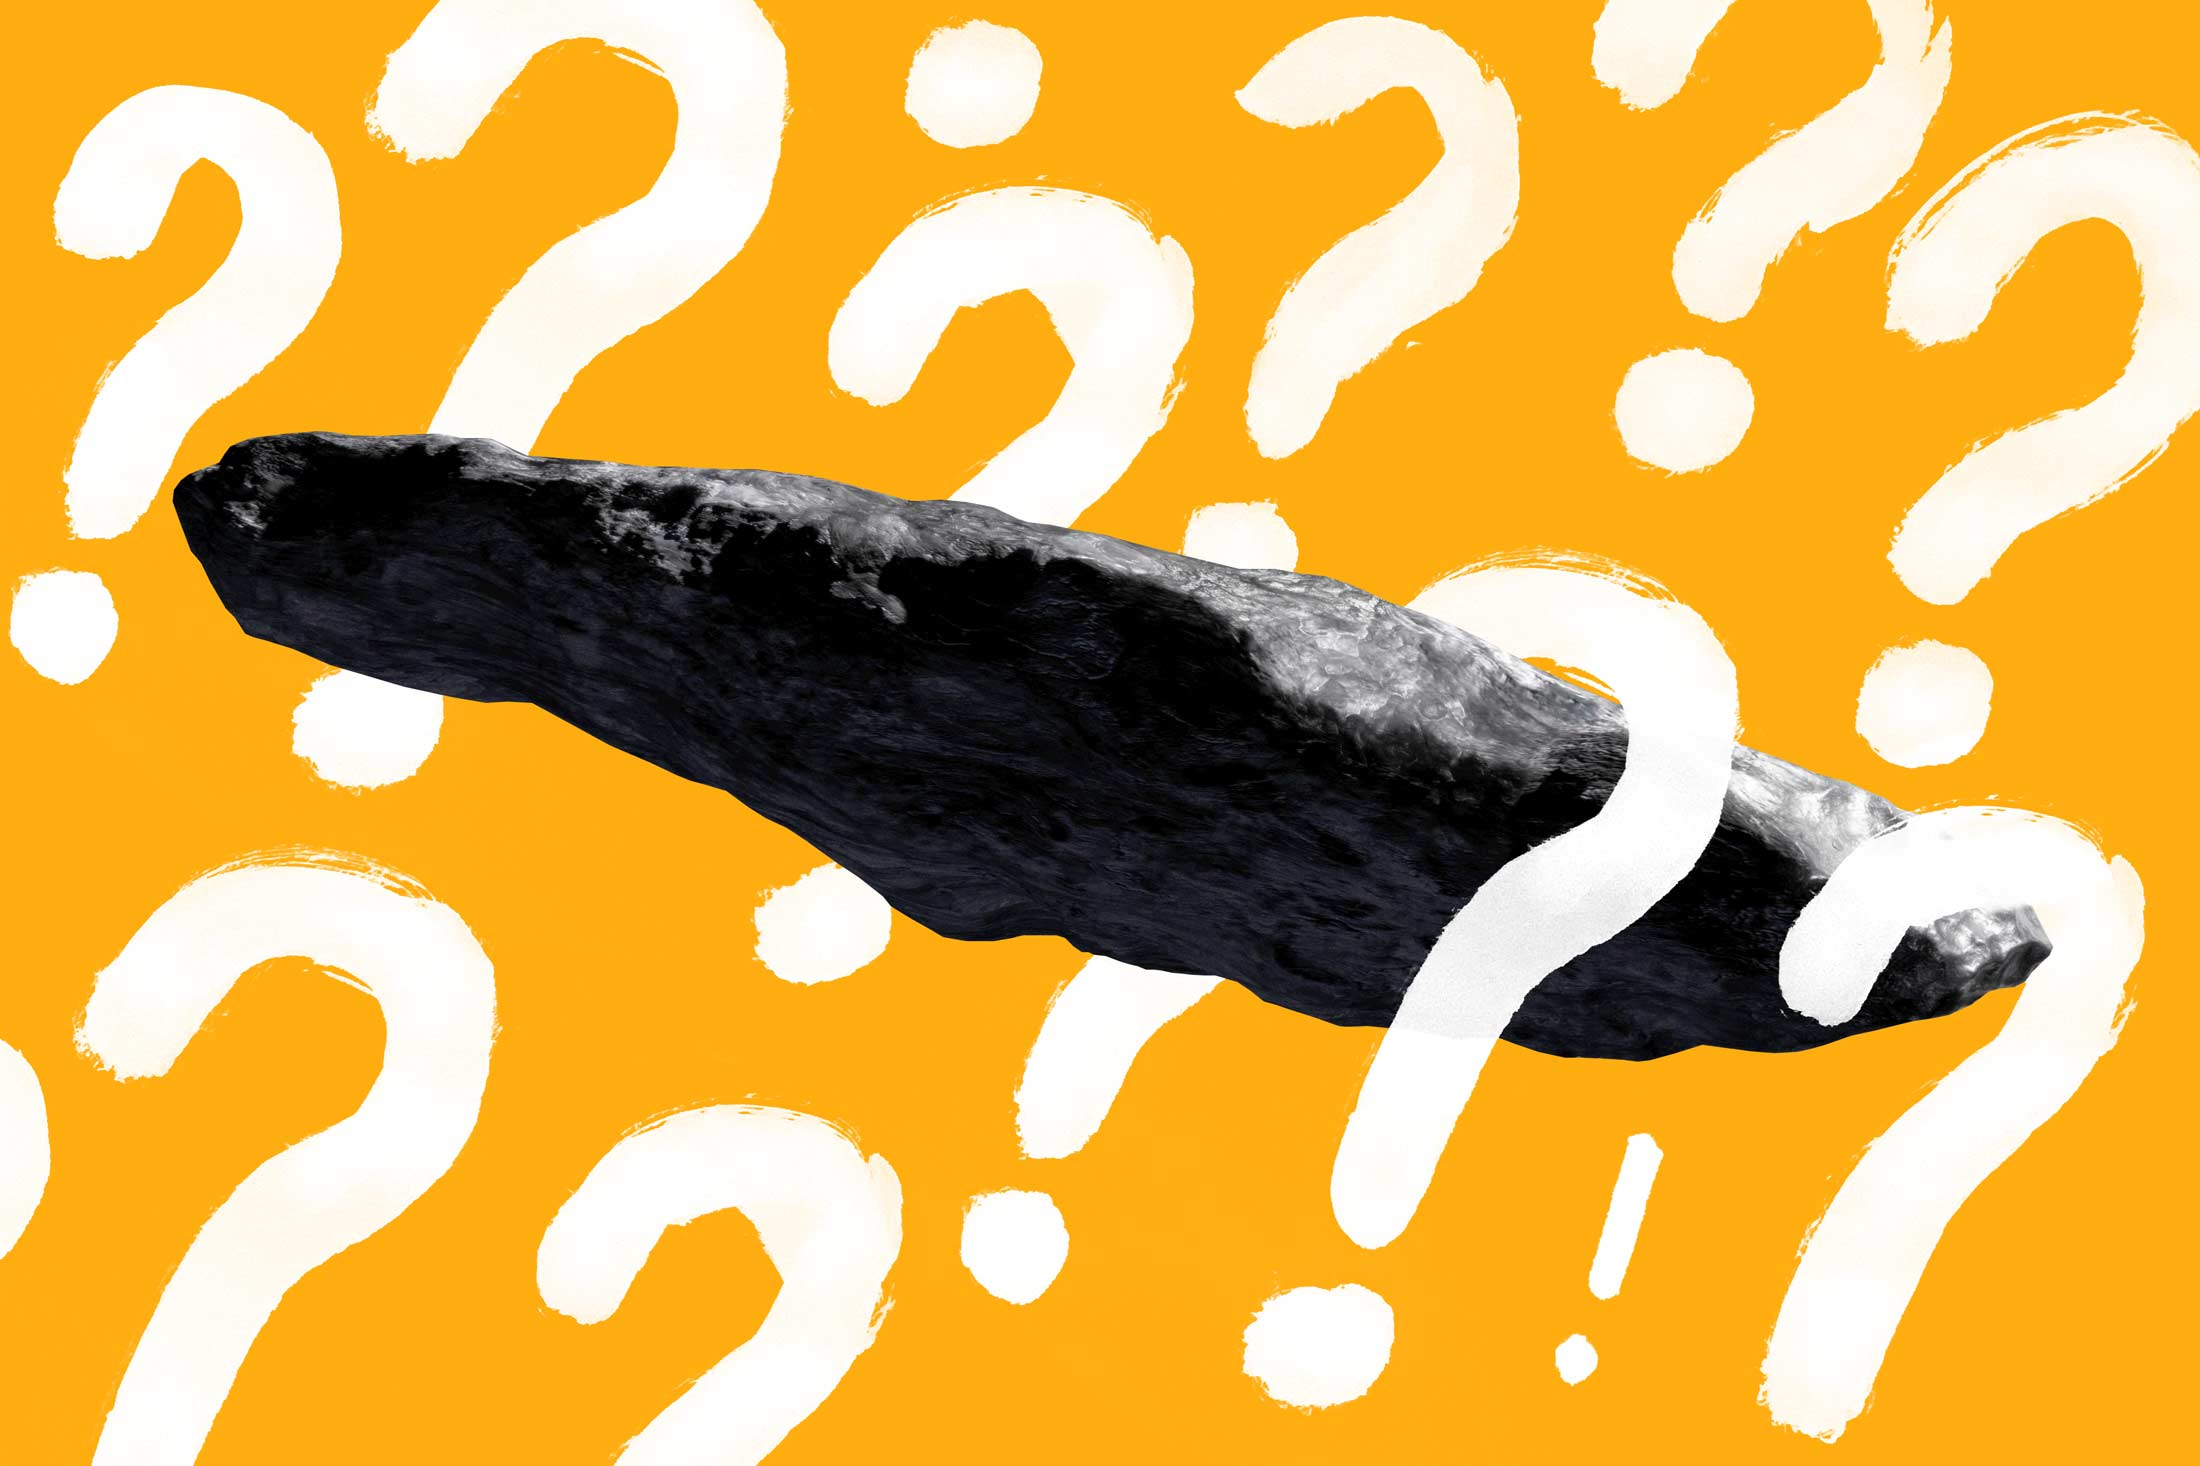 'Oumuamua (a very large, slender gray rock) surrounded by question marks and an exclamation point.